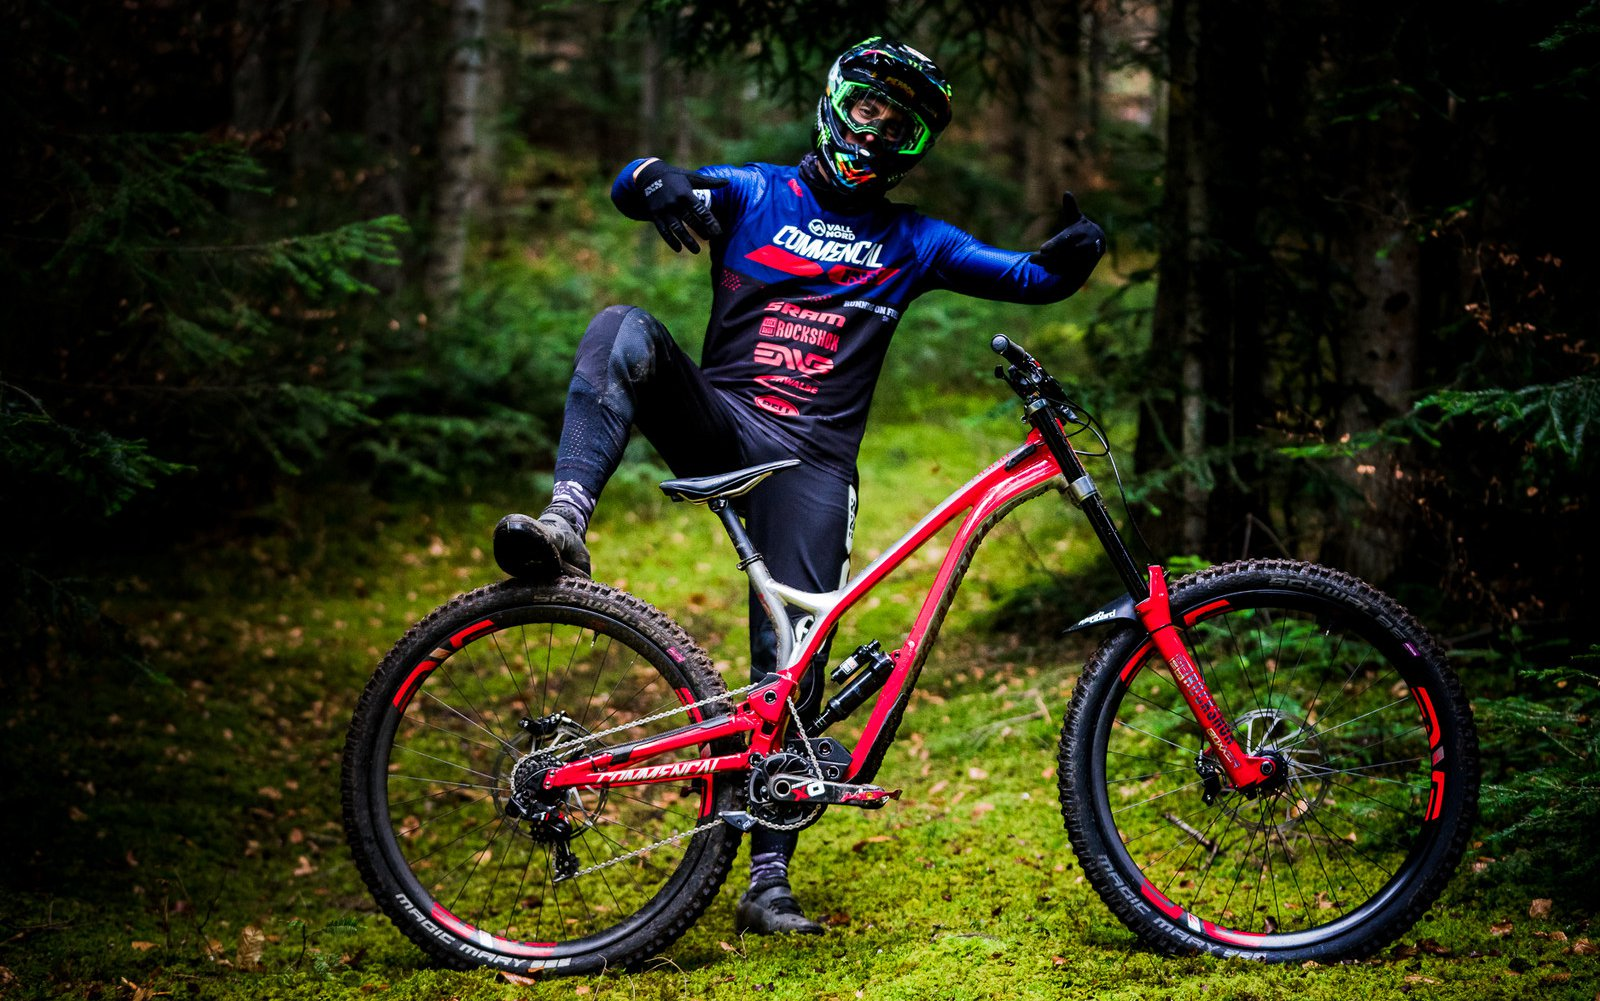 Amaury Pierron and his 2019 Commencal Supreme DH